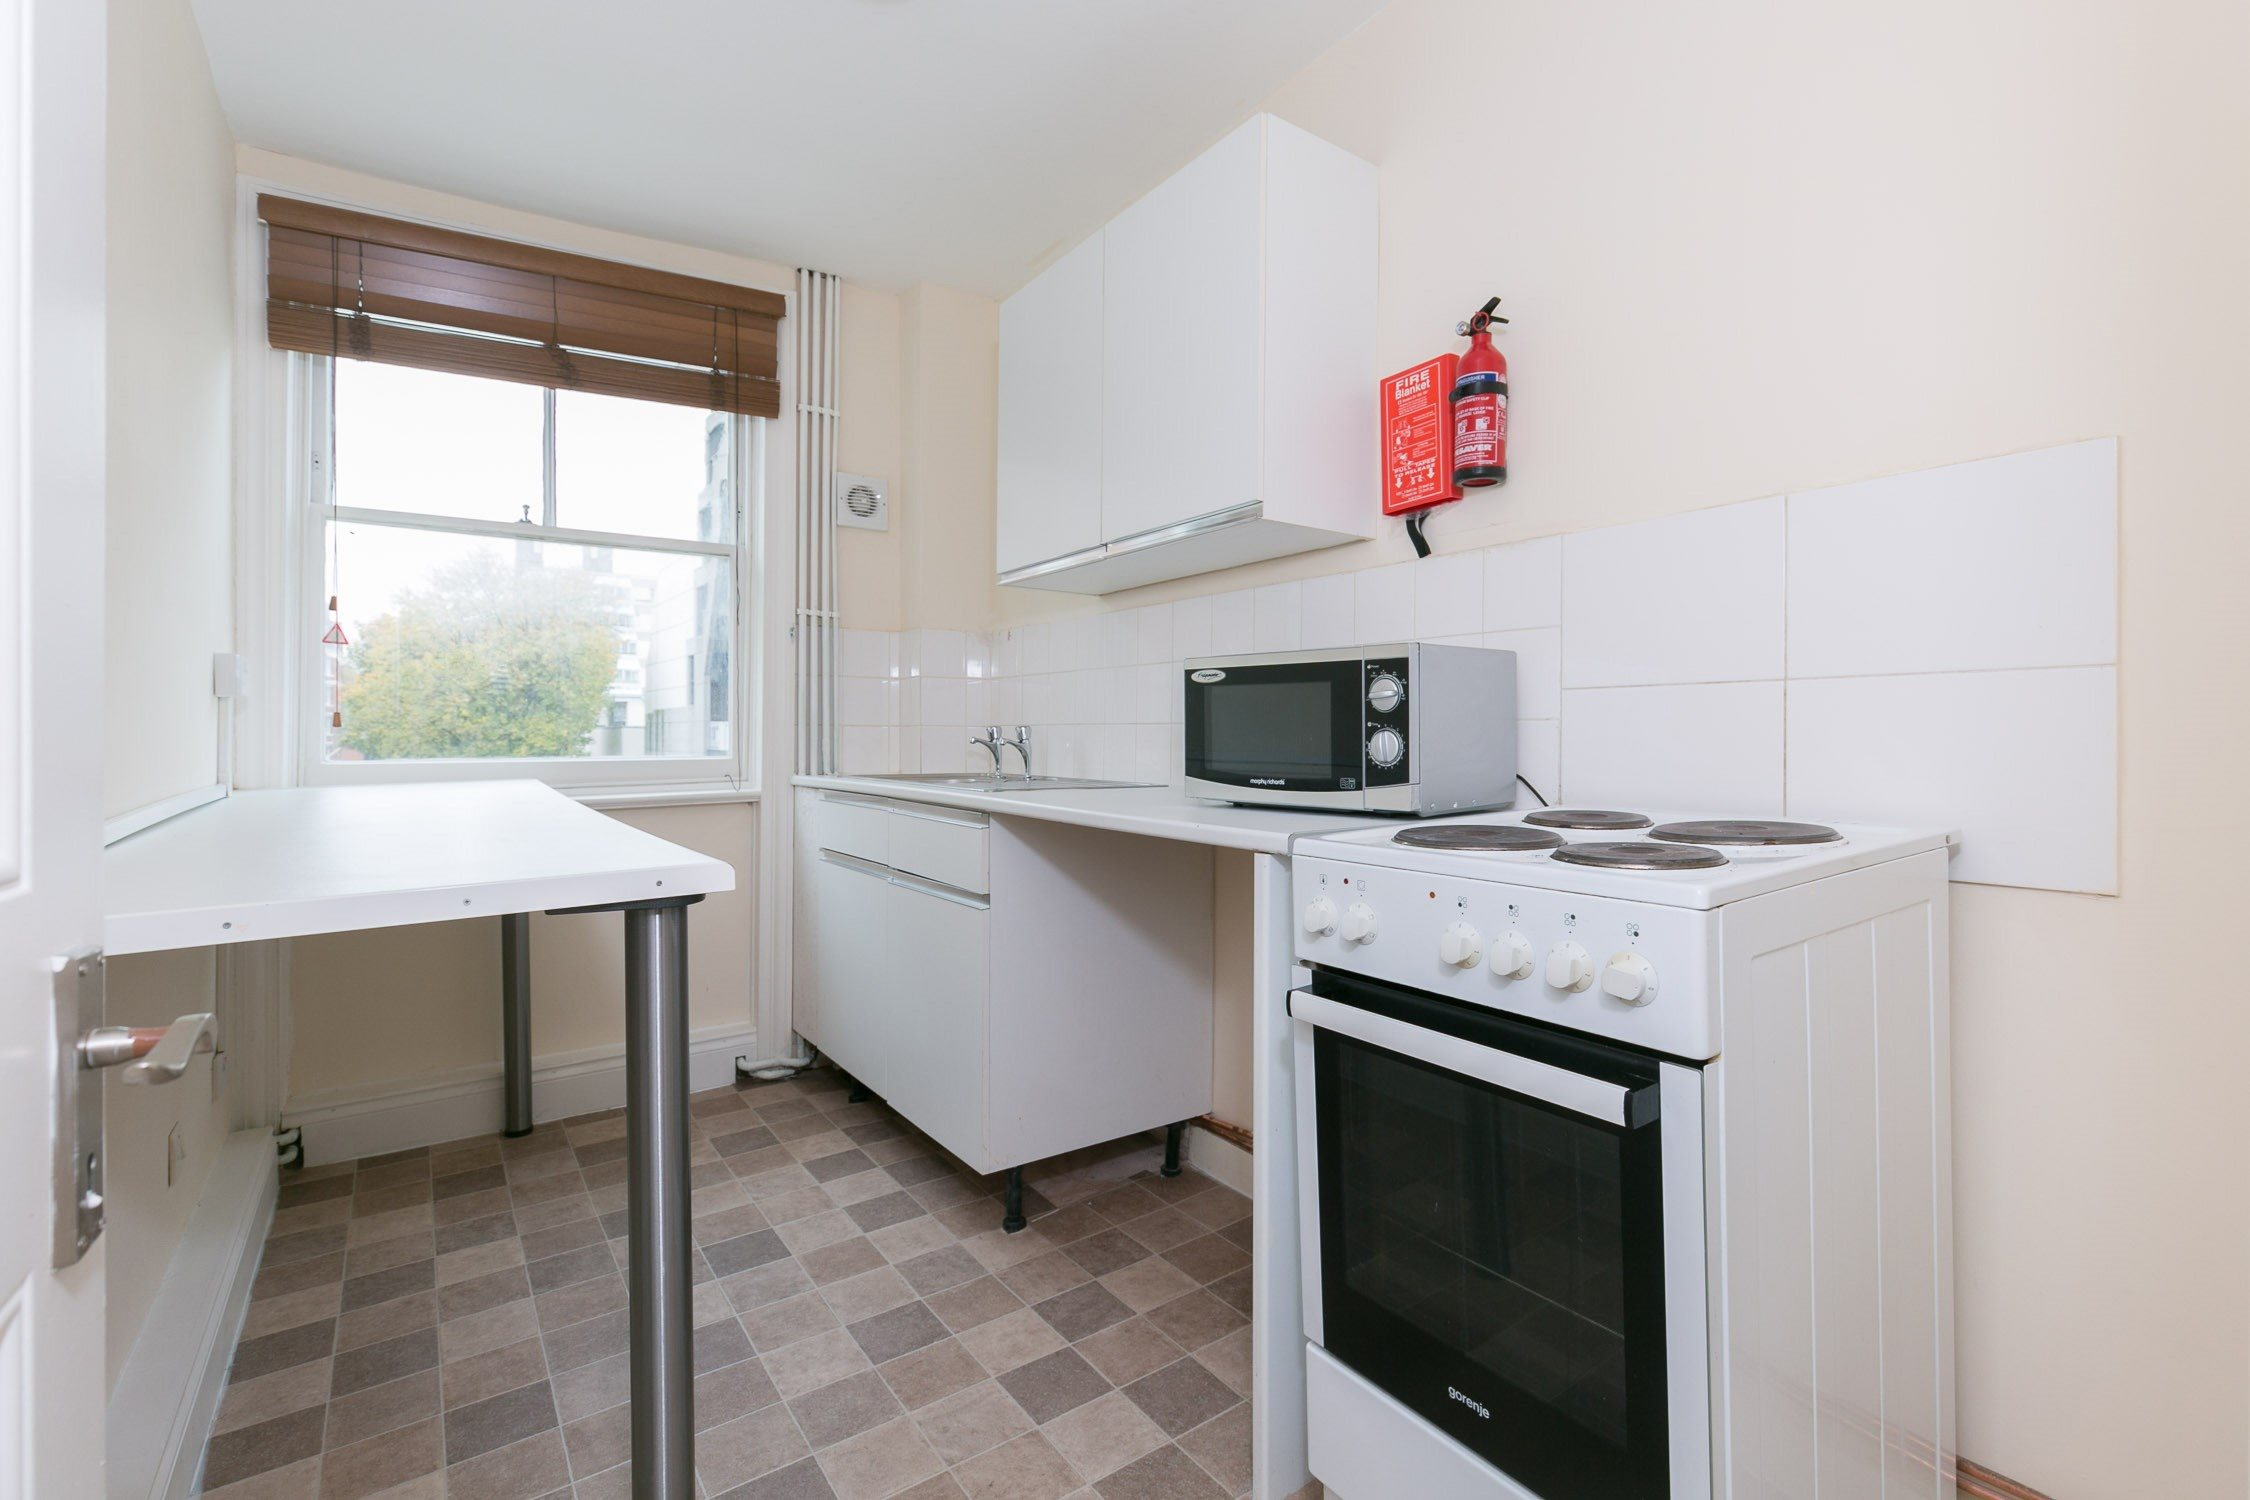 Portico - 5 Bedroom Flat recently let in Bloomsbury: Marchmont ...